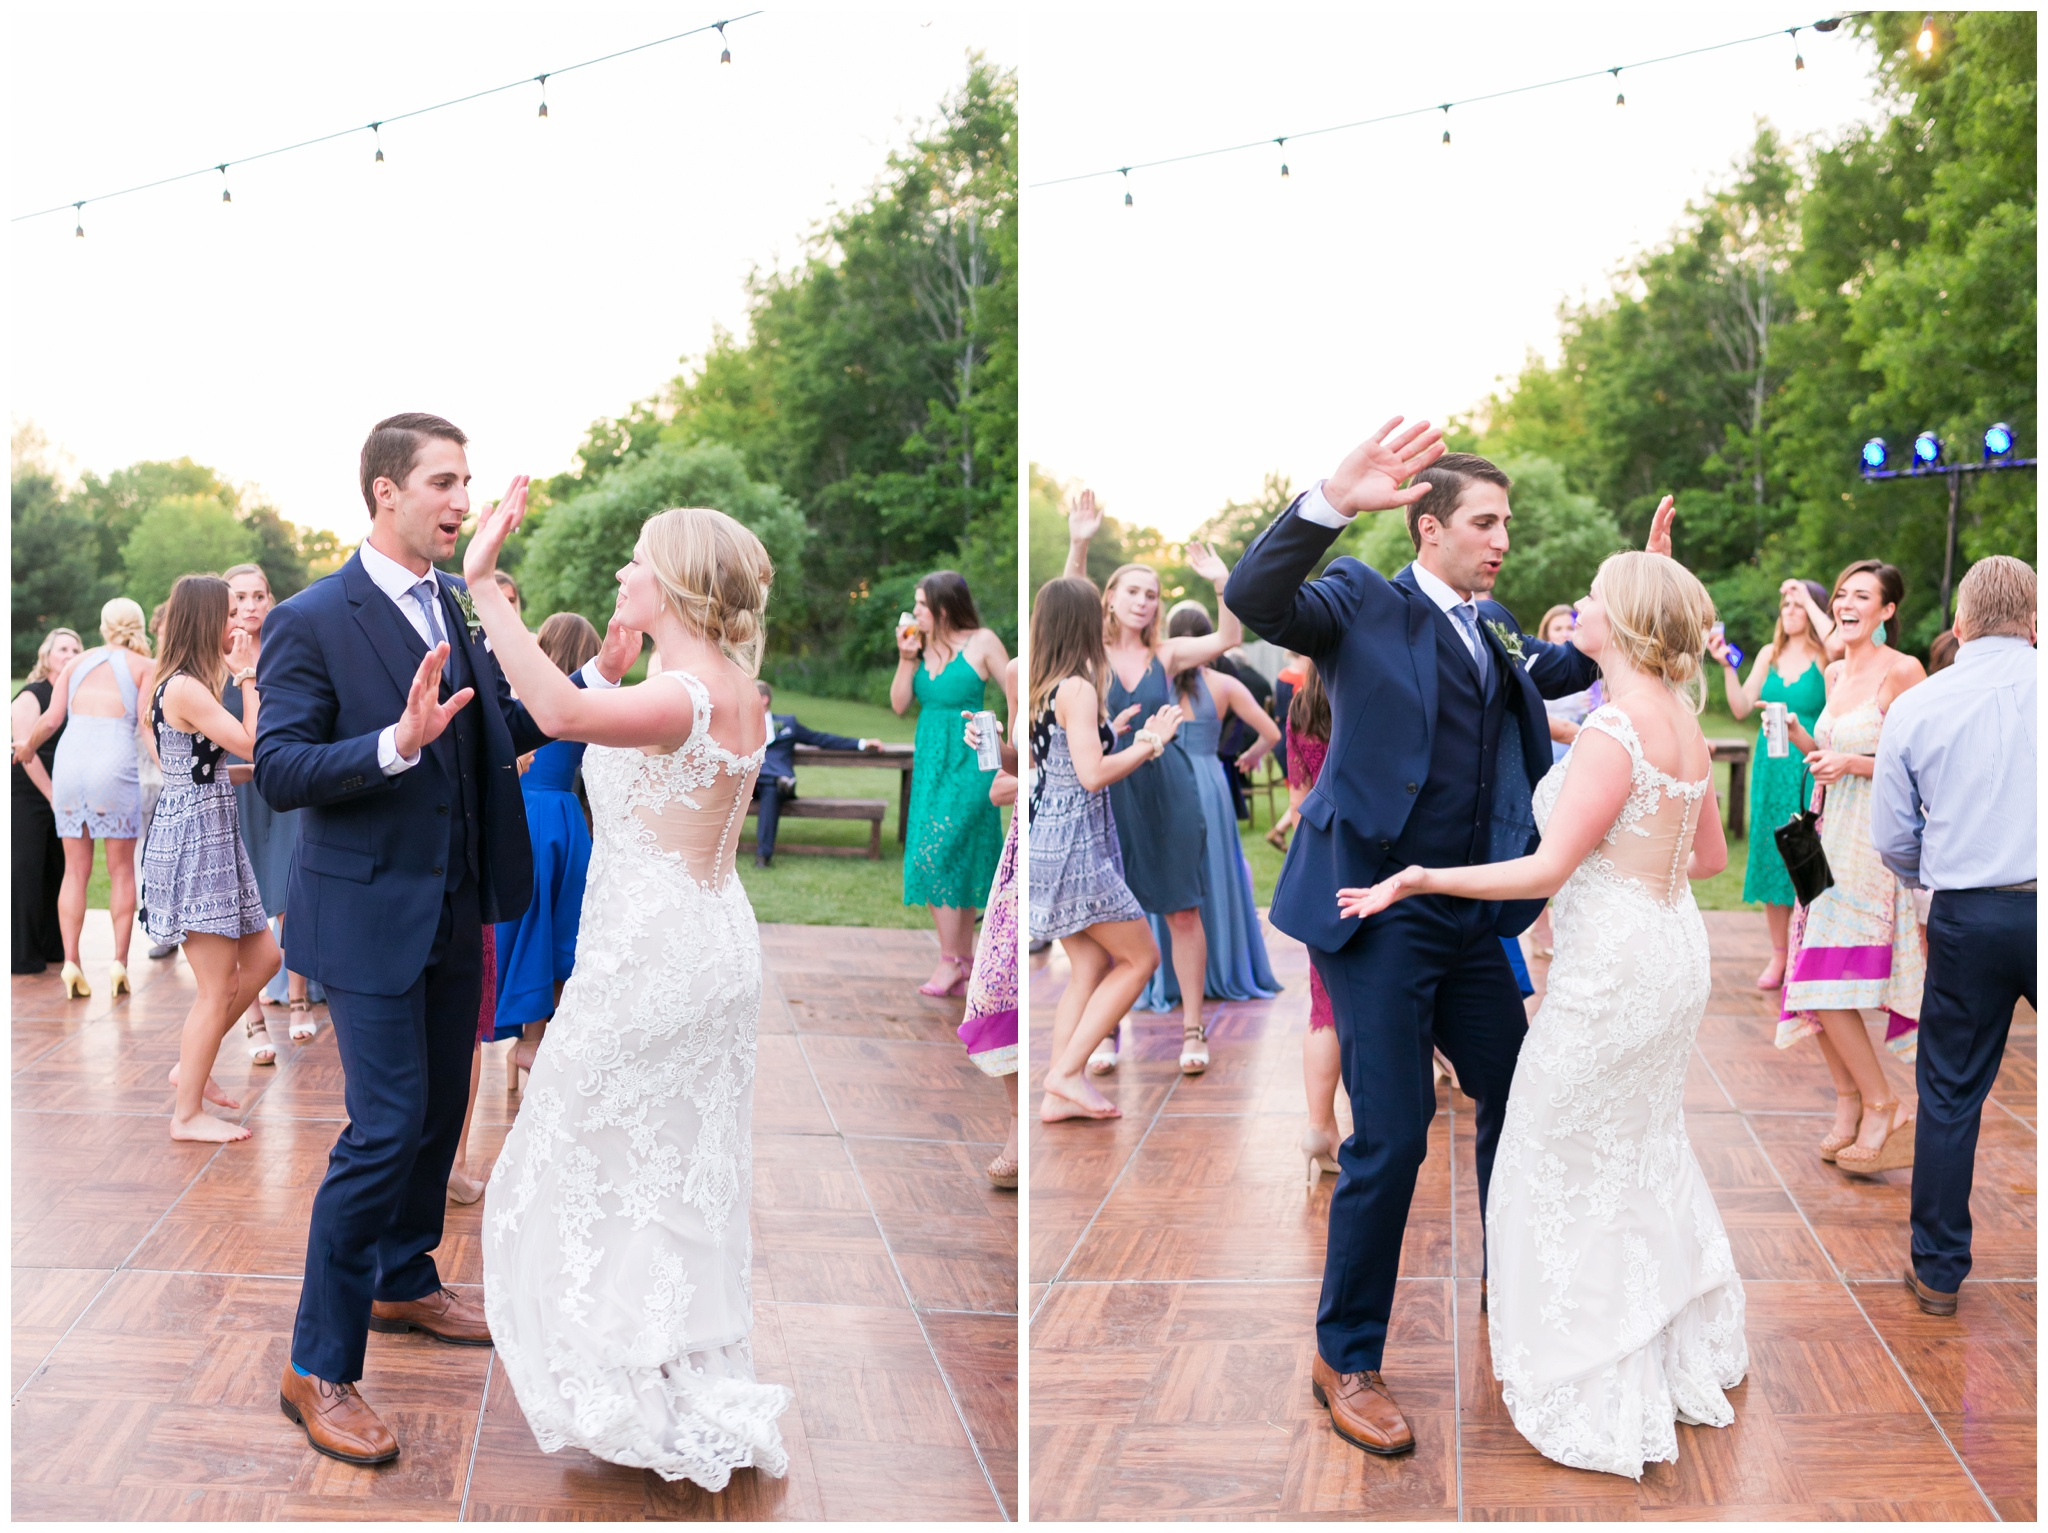 private_estate_wedding_stoughton_wisconsin_wedding_caynay_photo_3901.jpg